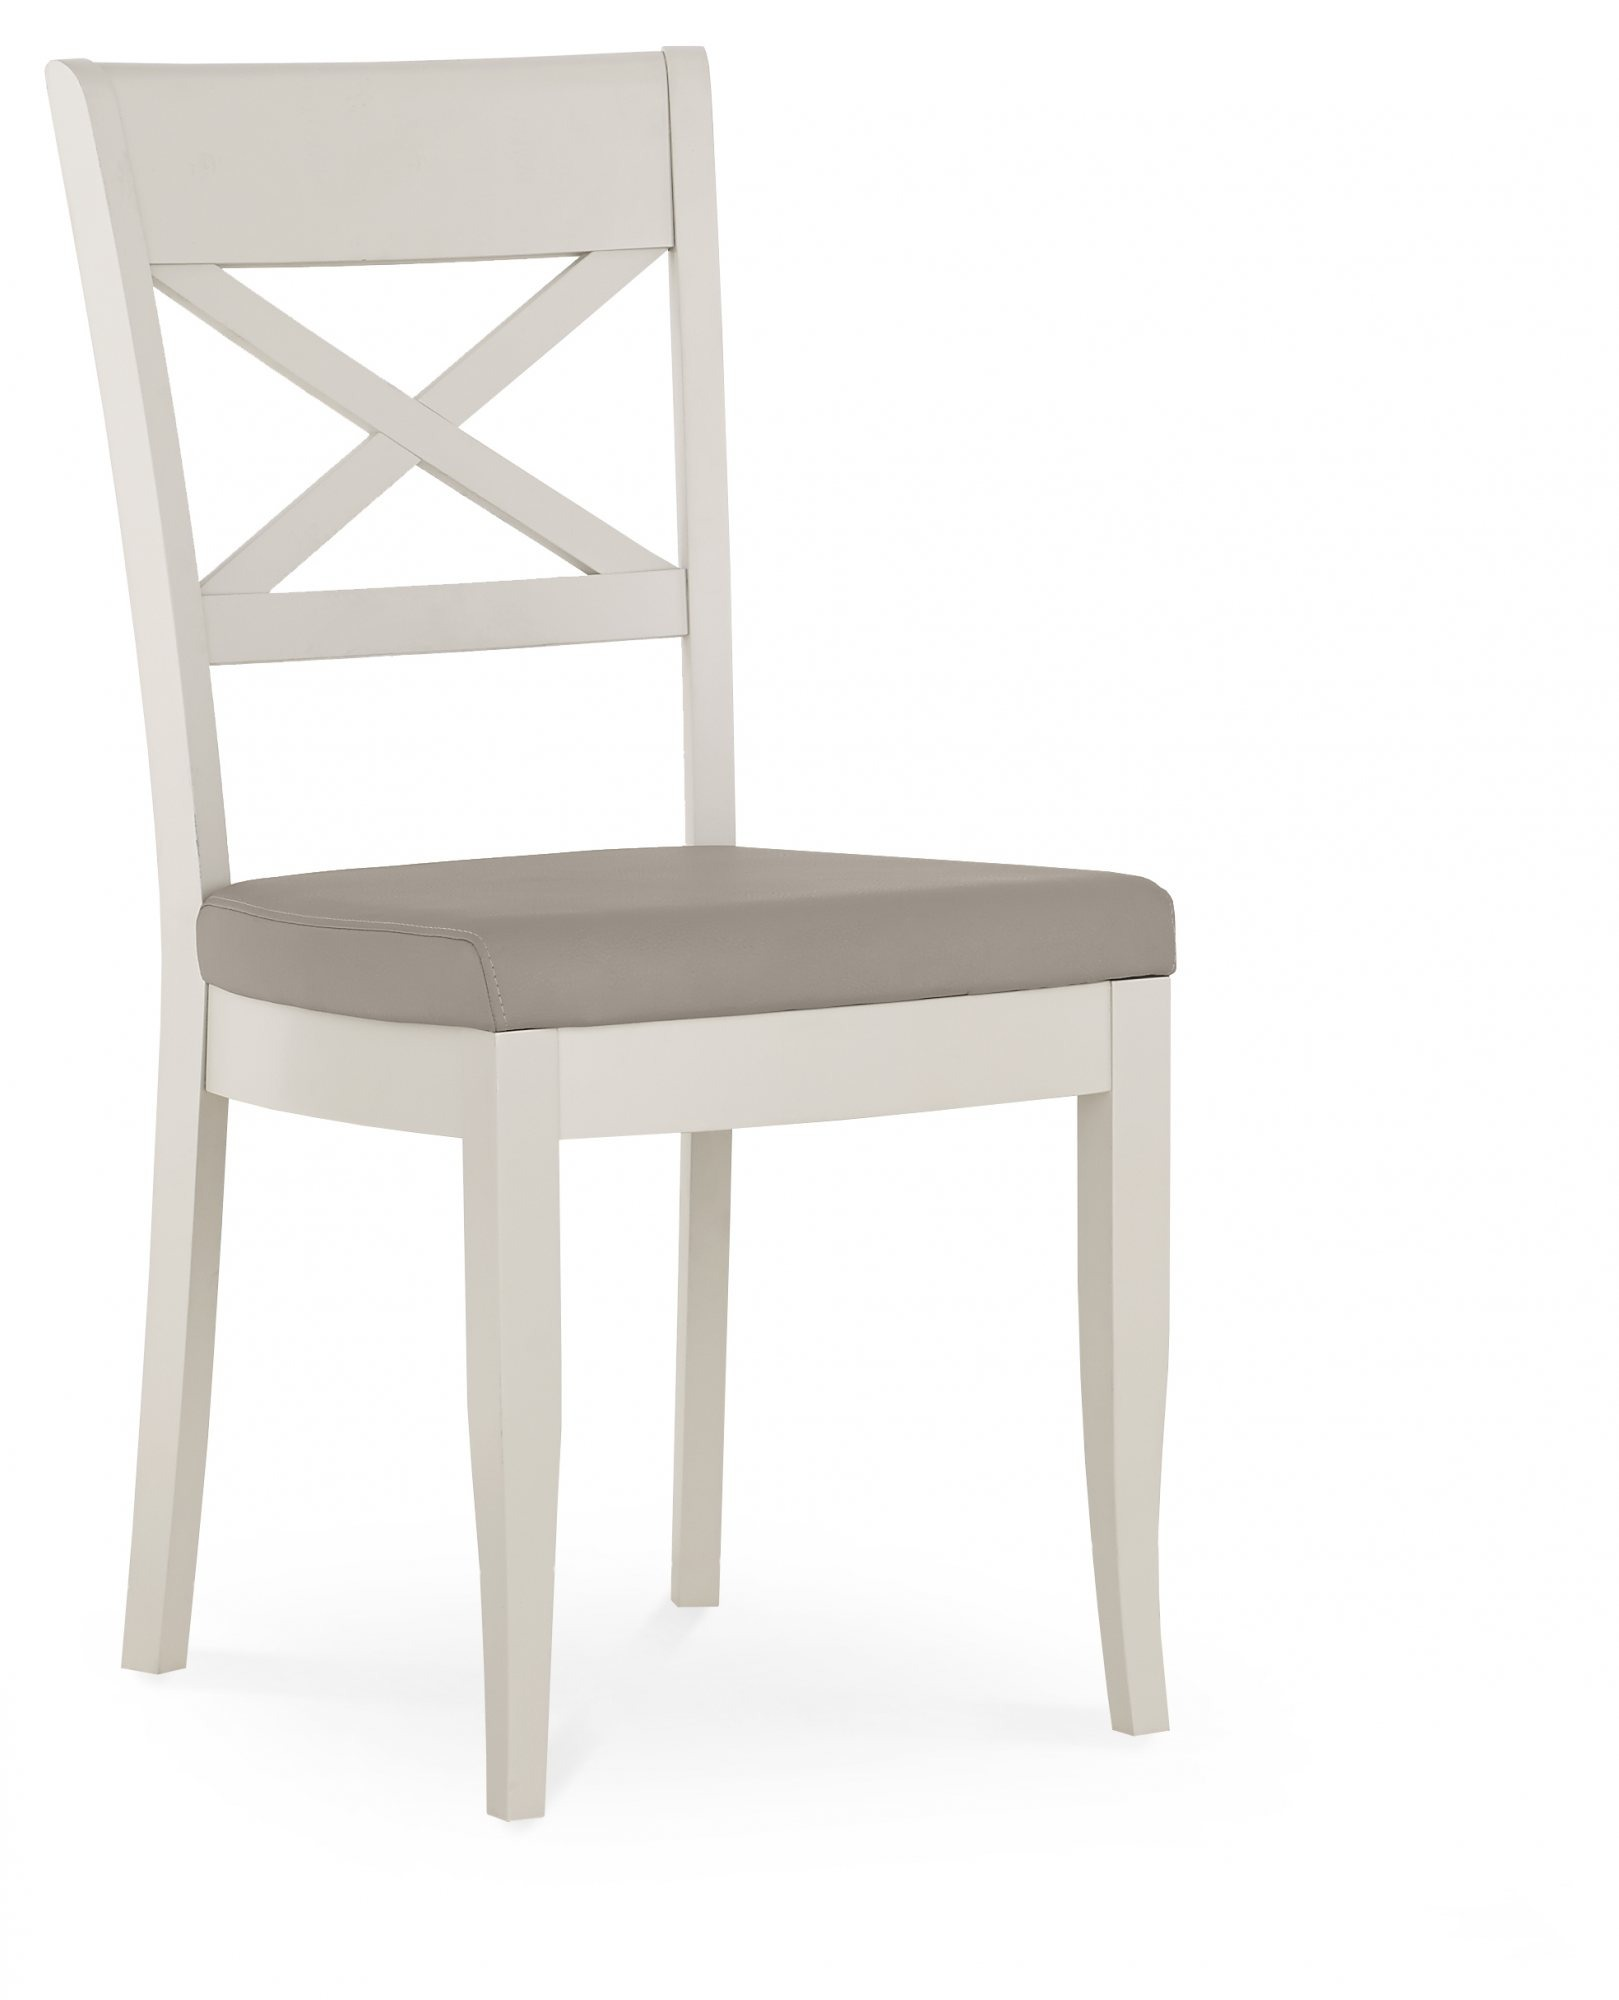 MONICA GREY DINING CHAIR - ANGLE DETAIL